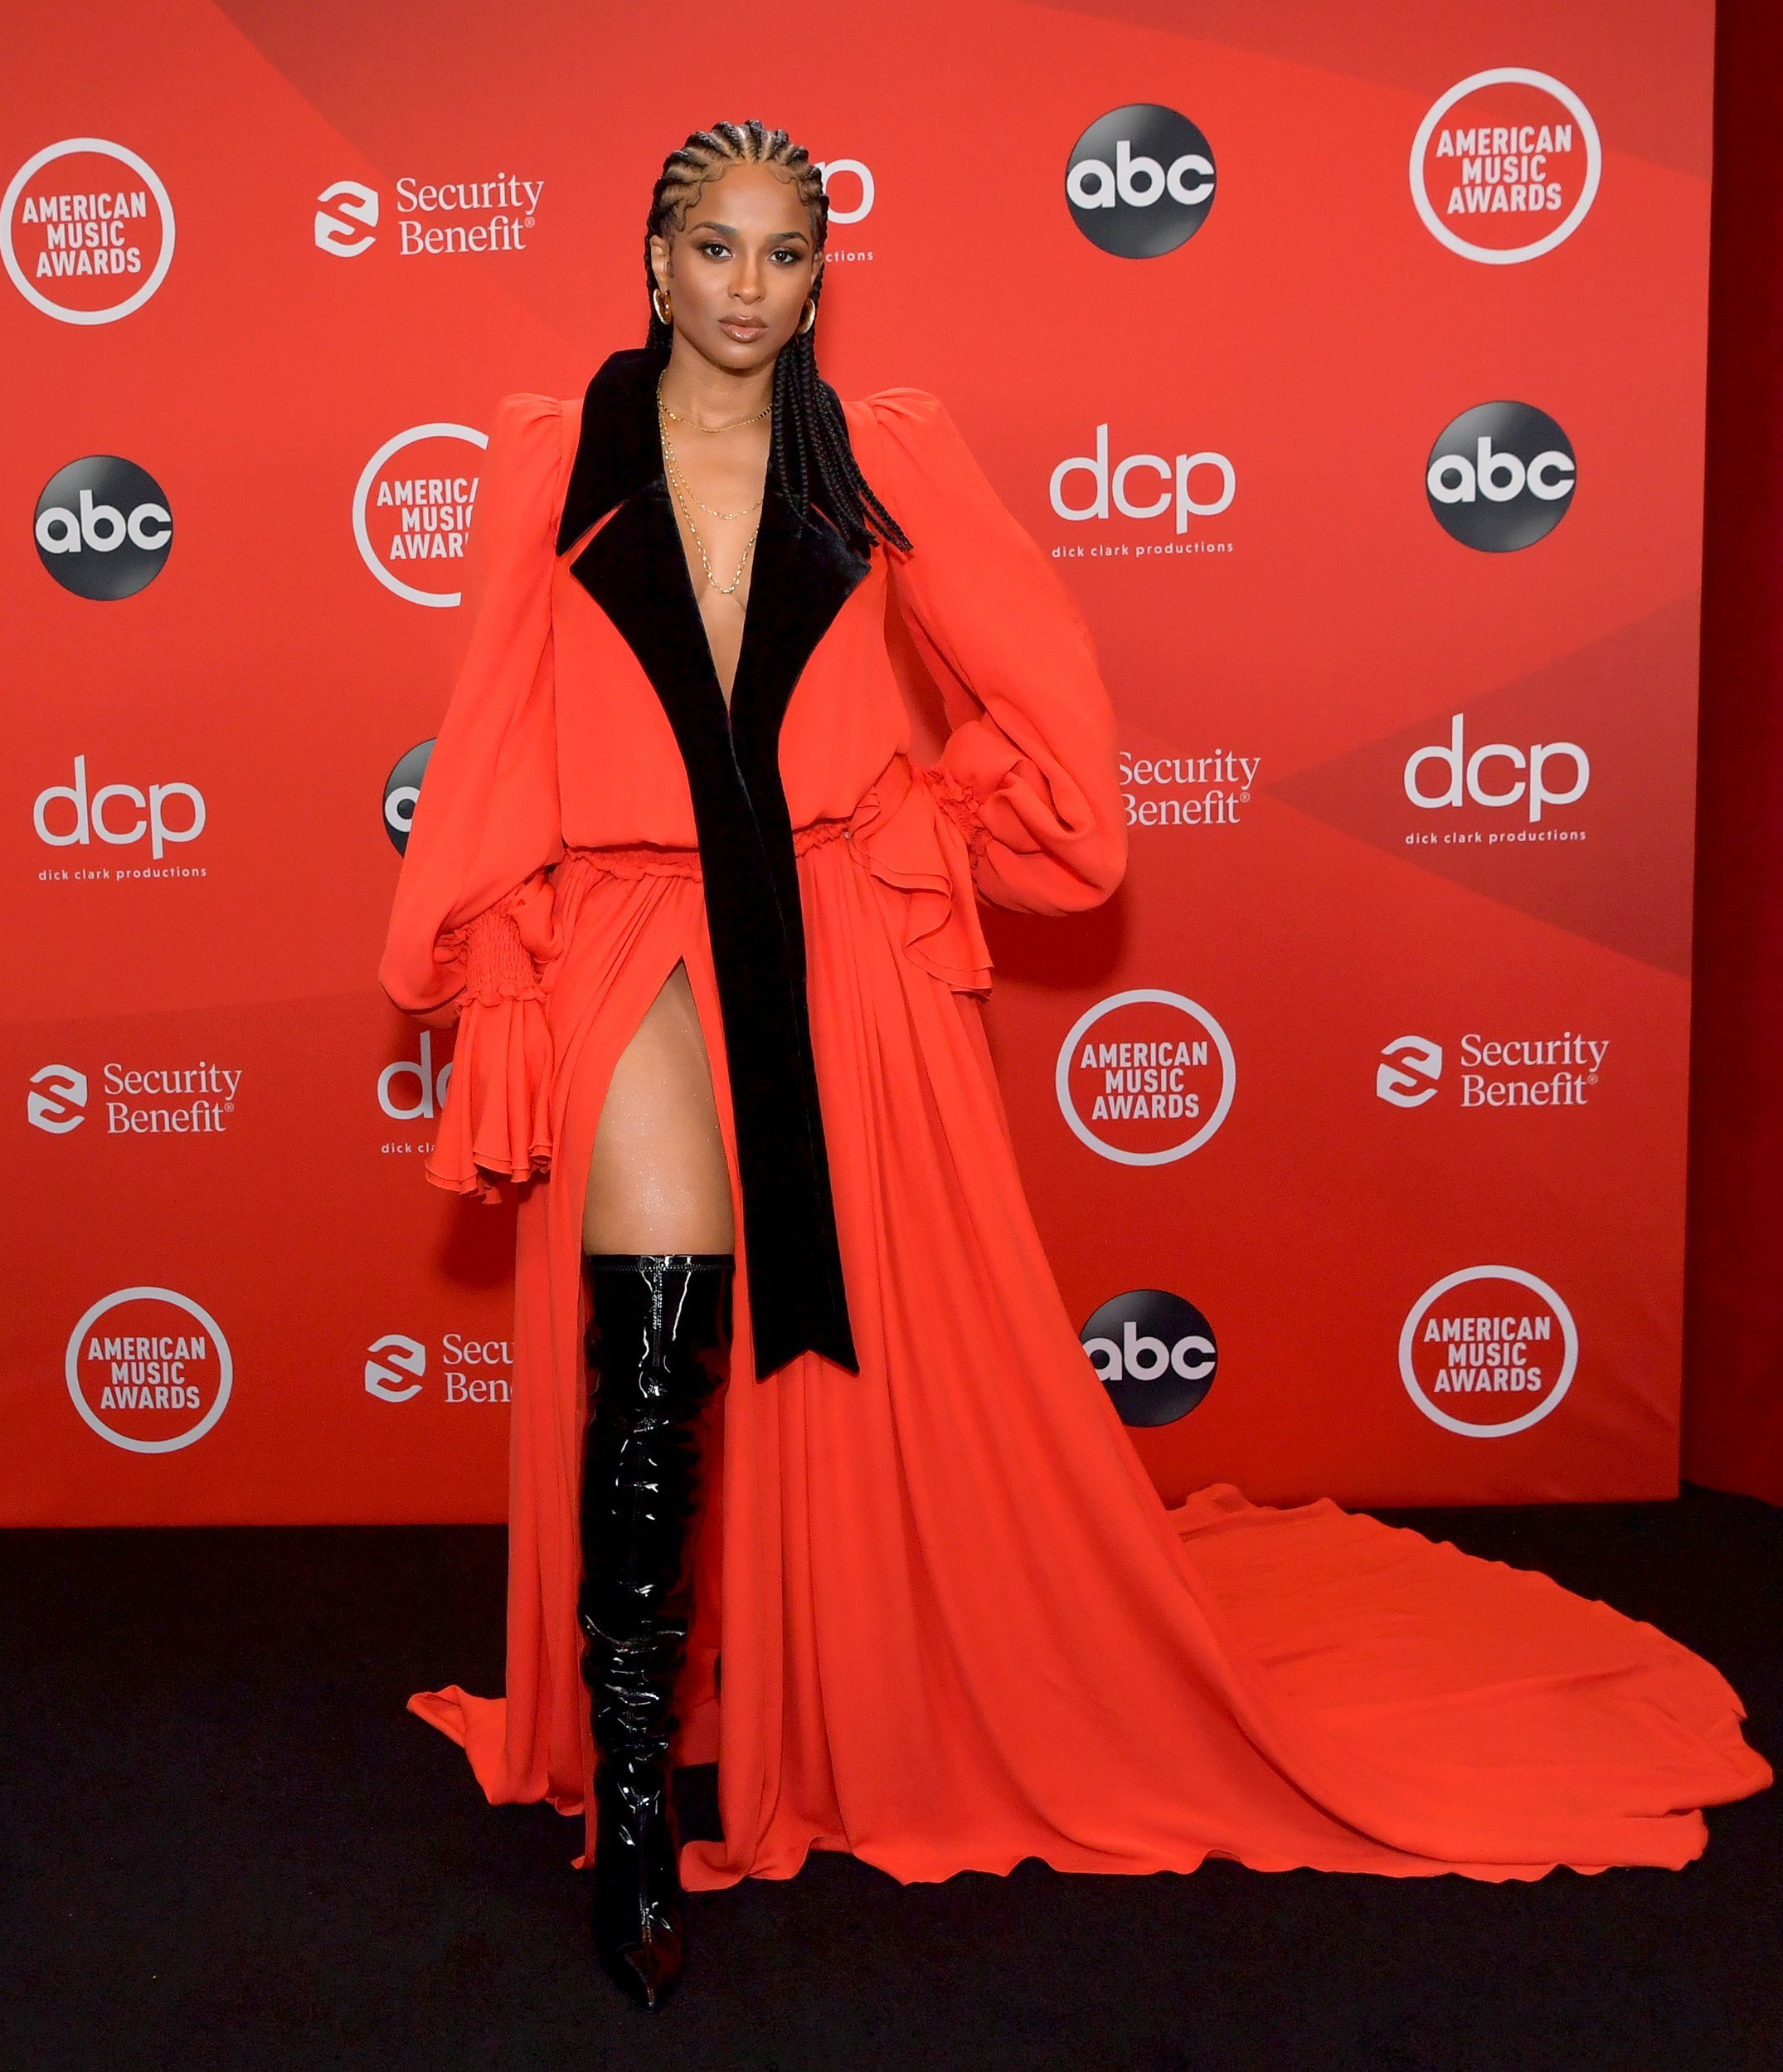 Ciara poses at the 2020 American Music Awards at Microsoft Theater on November 22, 2020 in Los Angeles, California.   Source: Getty Images